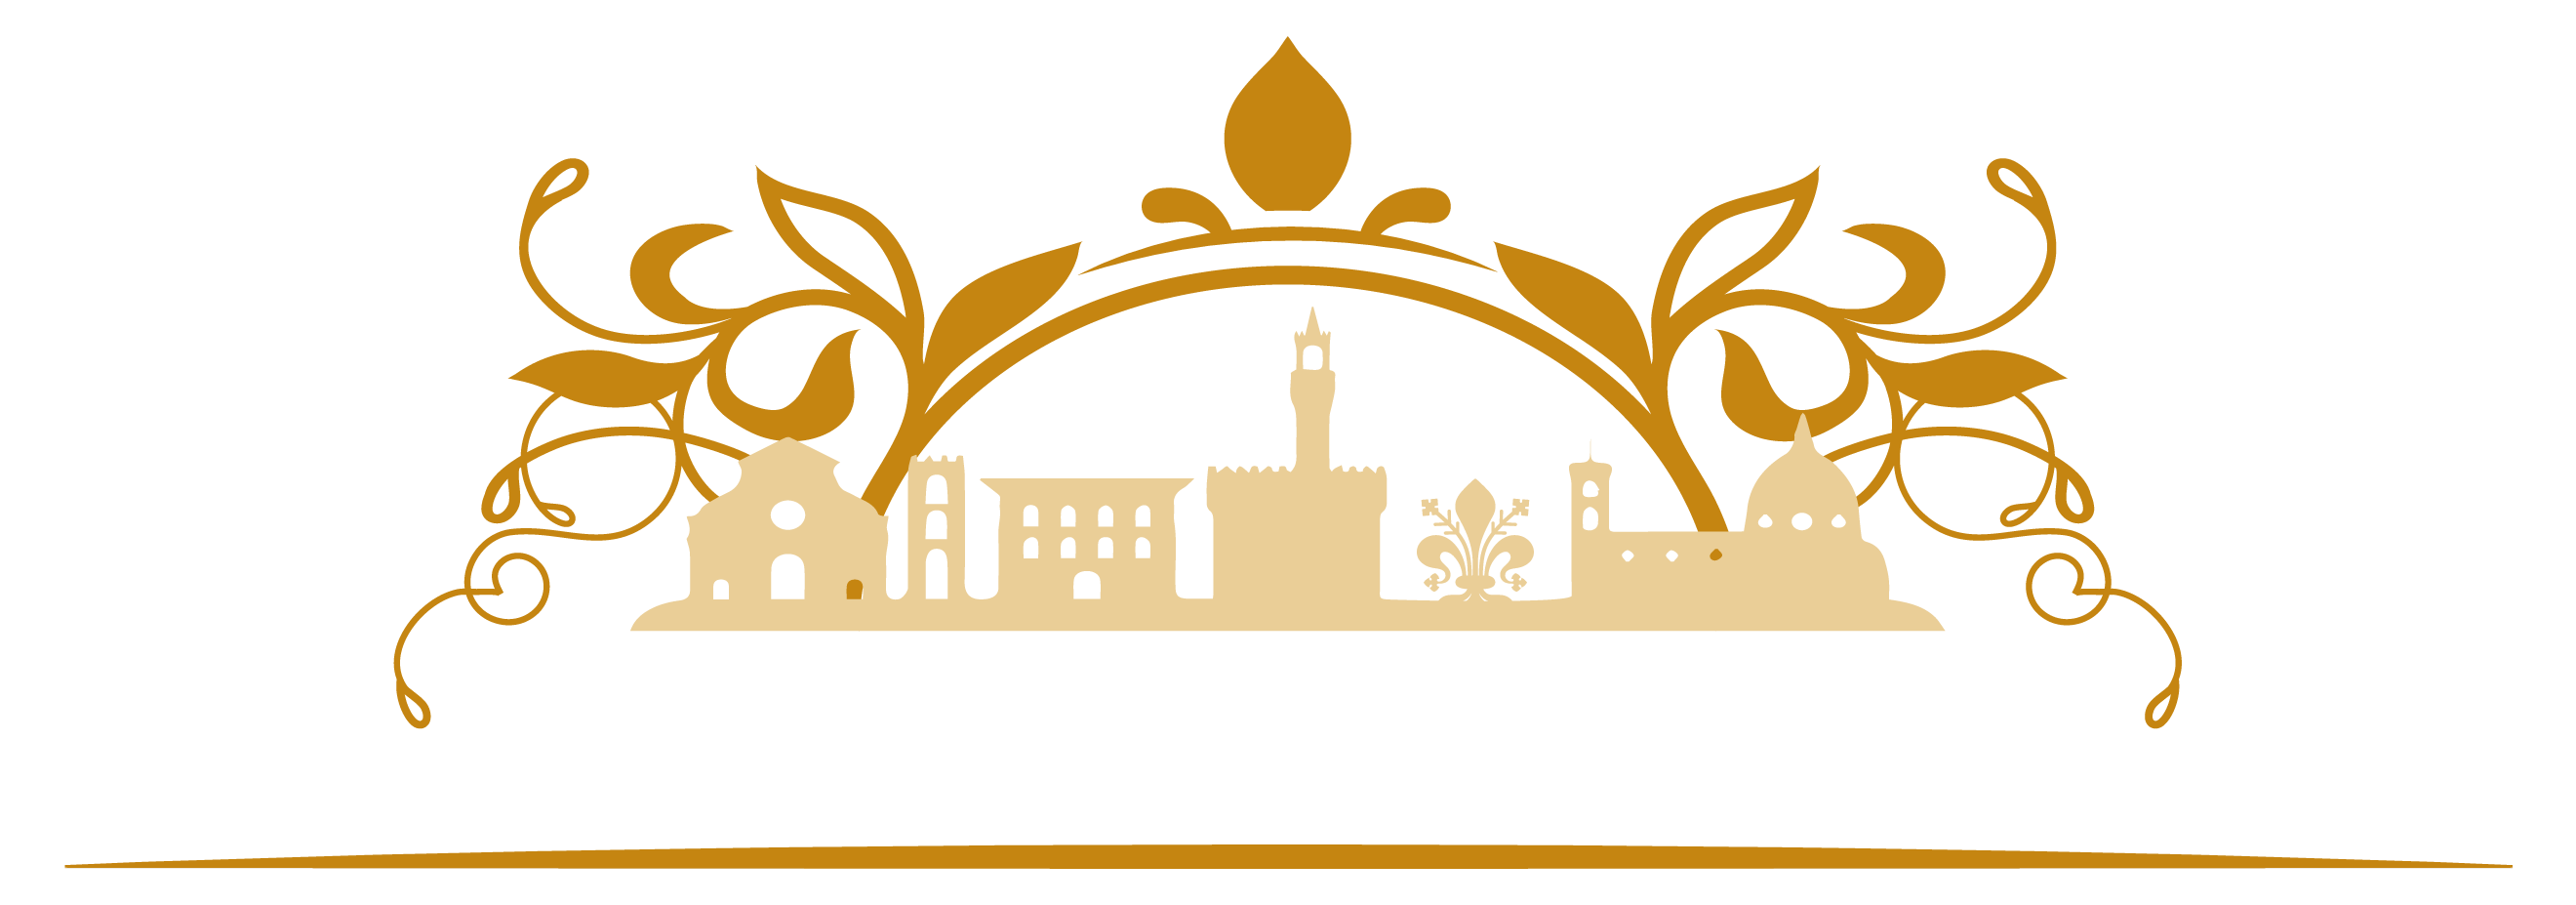 Capodanno a Firenze 2020- New Year's eve 2020 in Florence